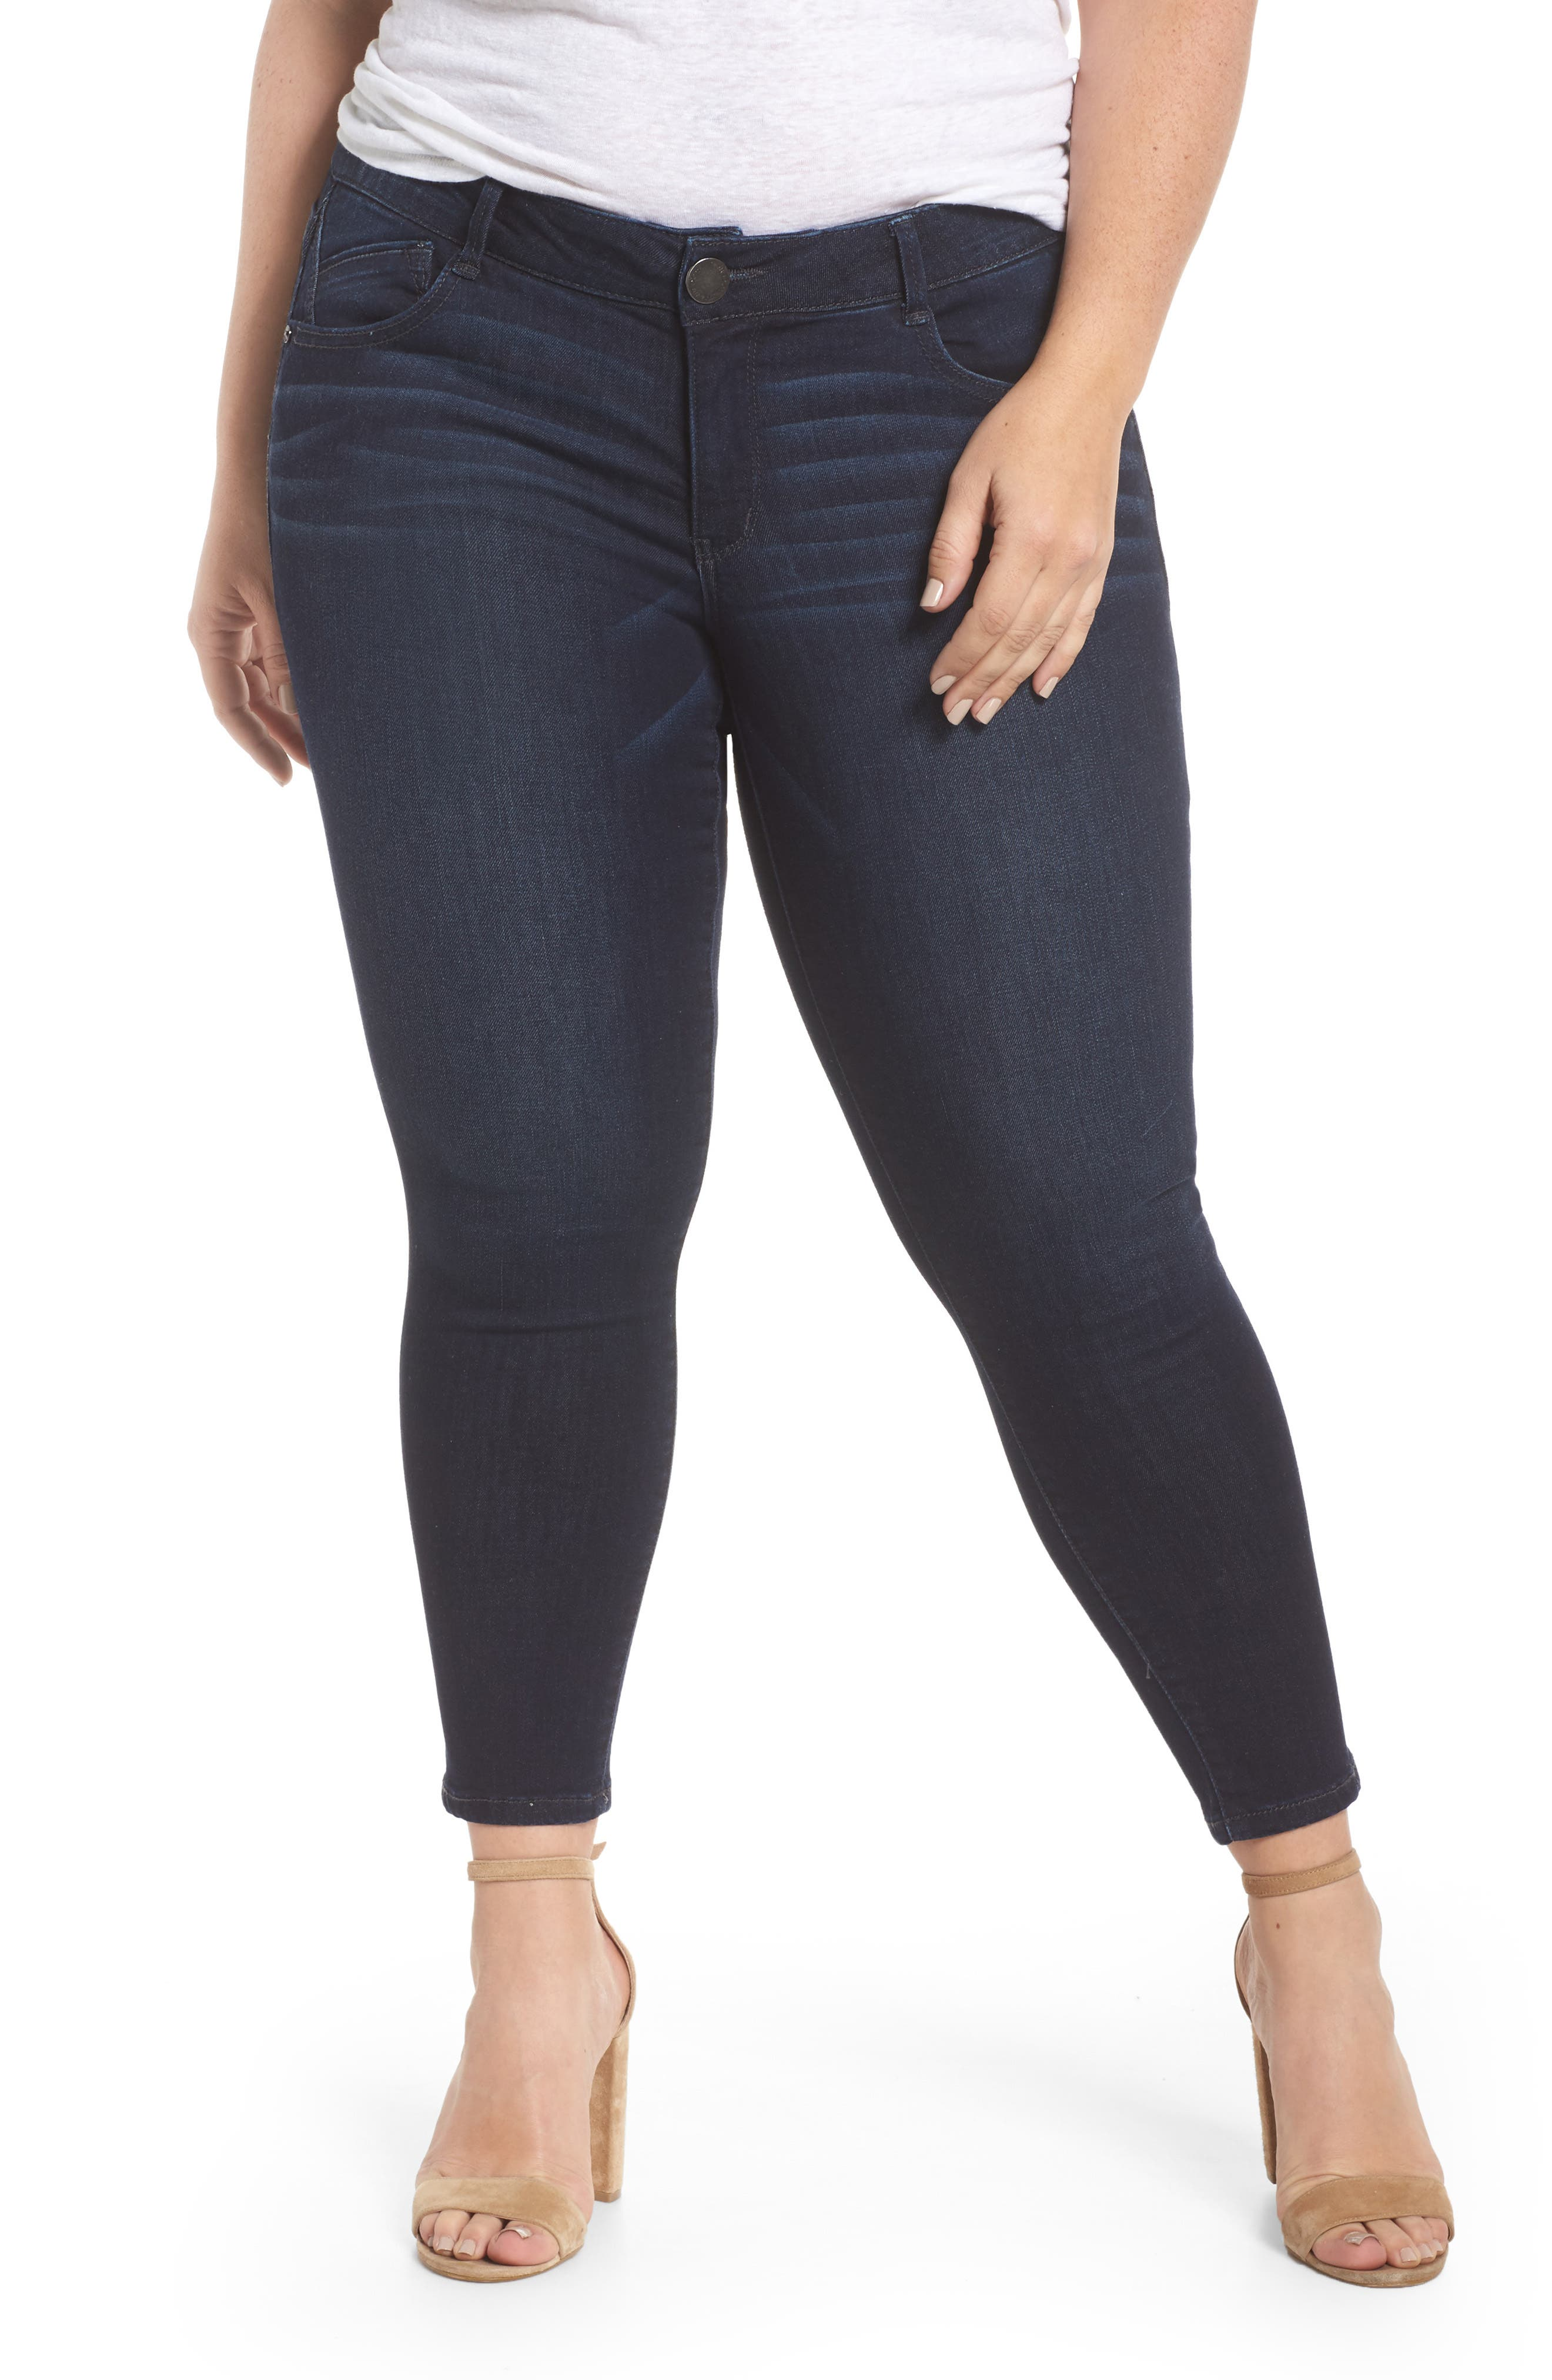 Ab-solution Luxe Touch Ankle Skinny Jeans,                             Main thumbnail 1, color,                             In-Indigo